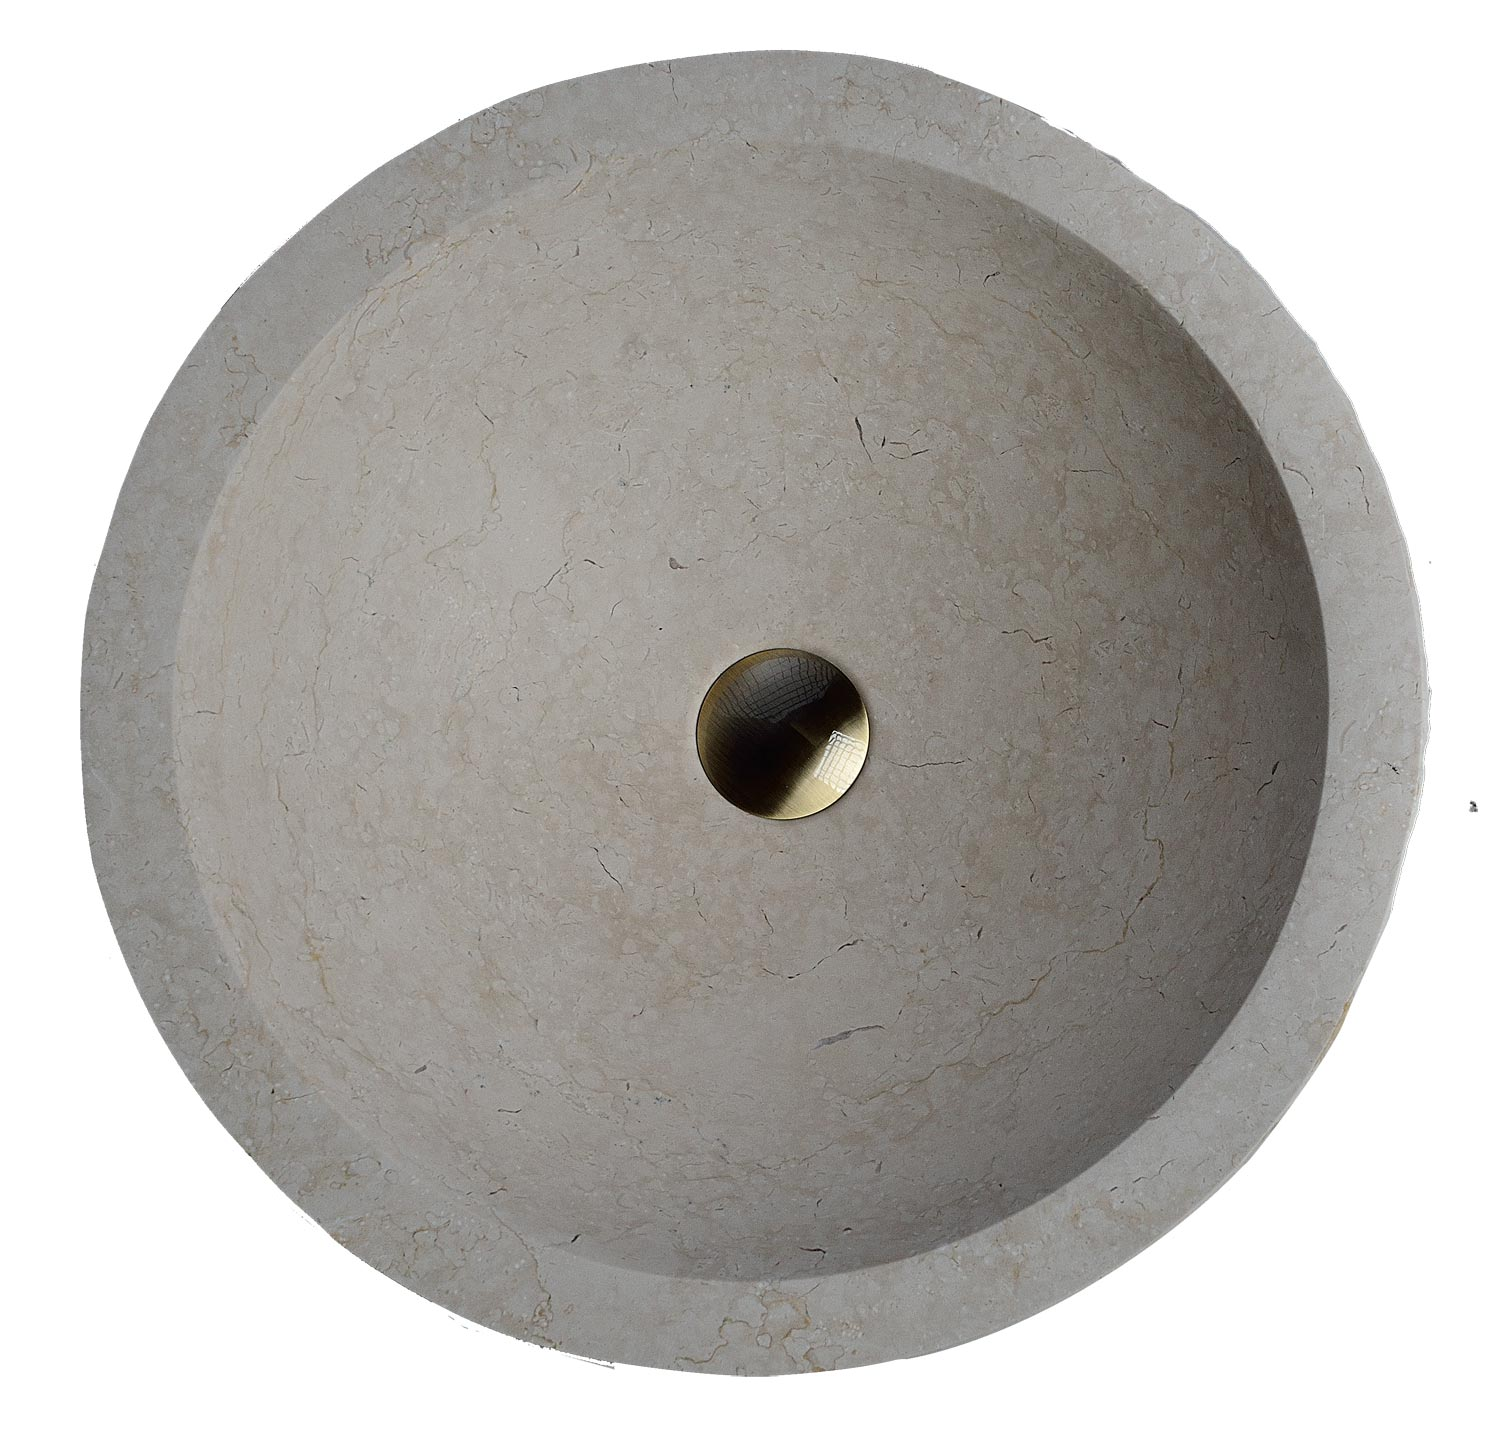 Marble Round Stone : Maude stone round vessel sink with rough exterior lm